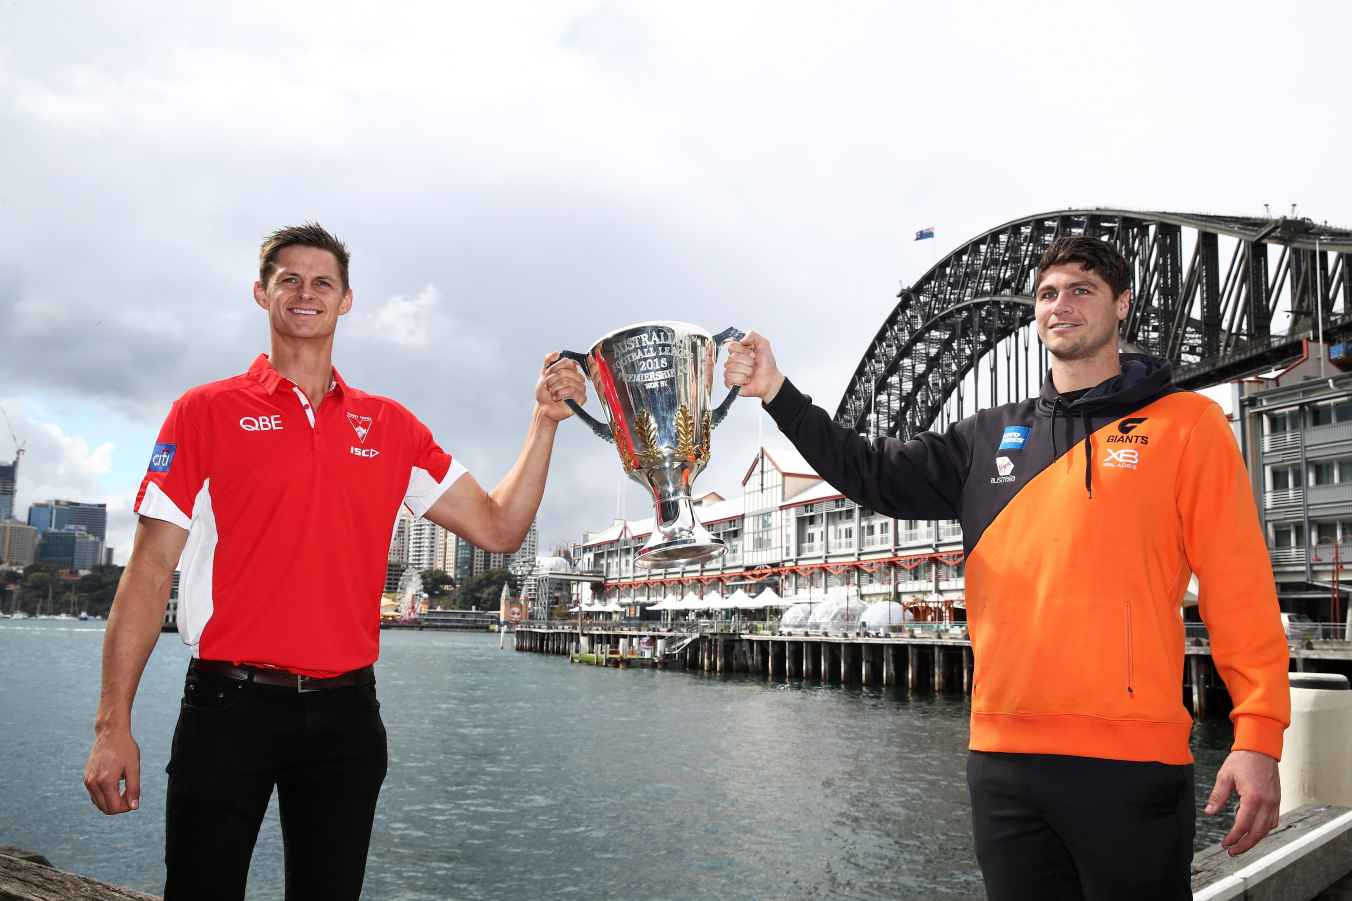 Callum Sinclair of the Sydney Swans (L) and Jonathon Patton of the GWS Giants (R) pose with the AFL Premiership Cup during the 2018 Toyota AFL Finals Series in Sydney Media Event